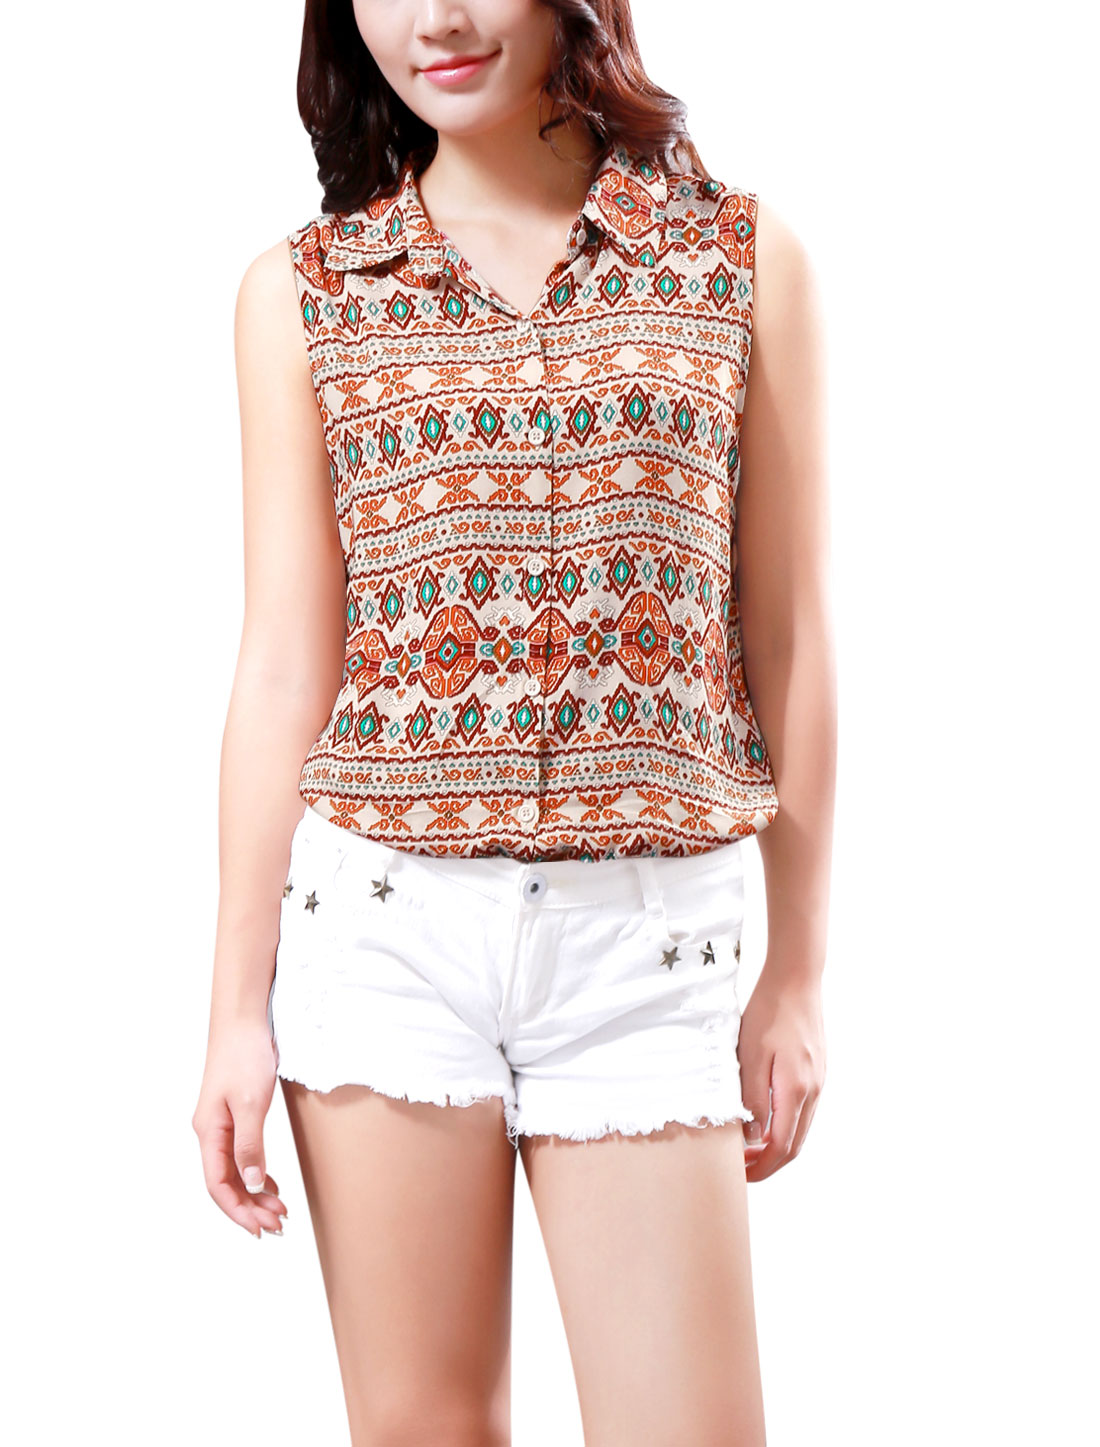 Ladies Allover Geometric Print Sleeveless Trendy Top Shirt Beige XL